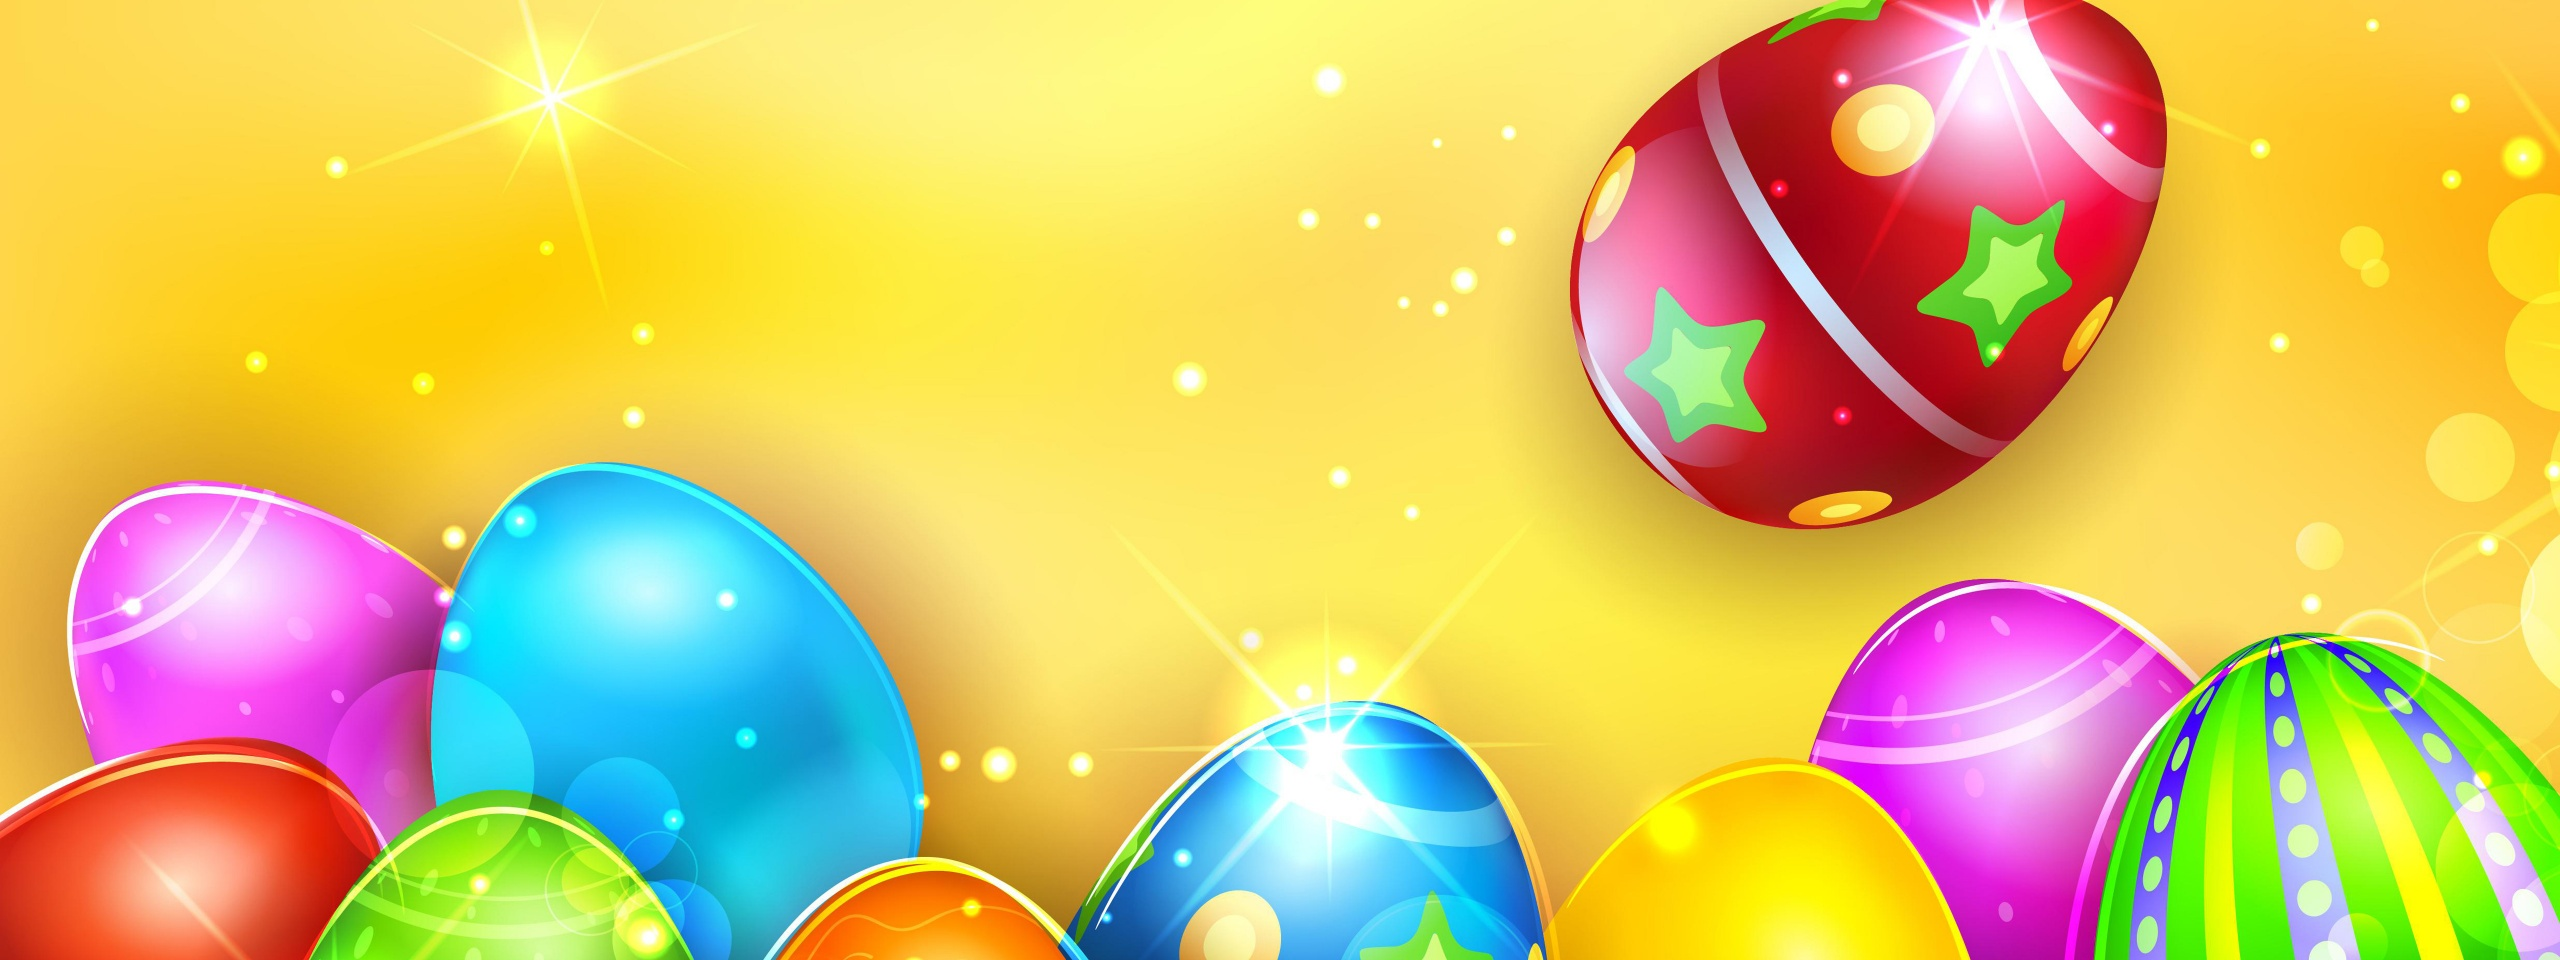 Colorful Shiny Easter Eggs